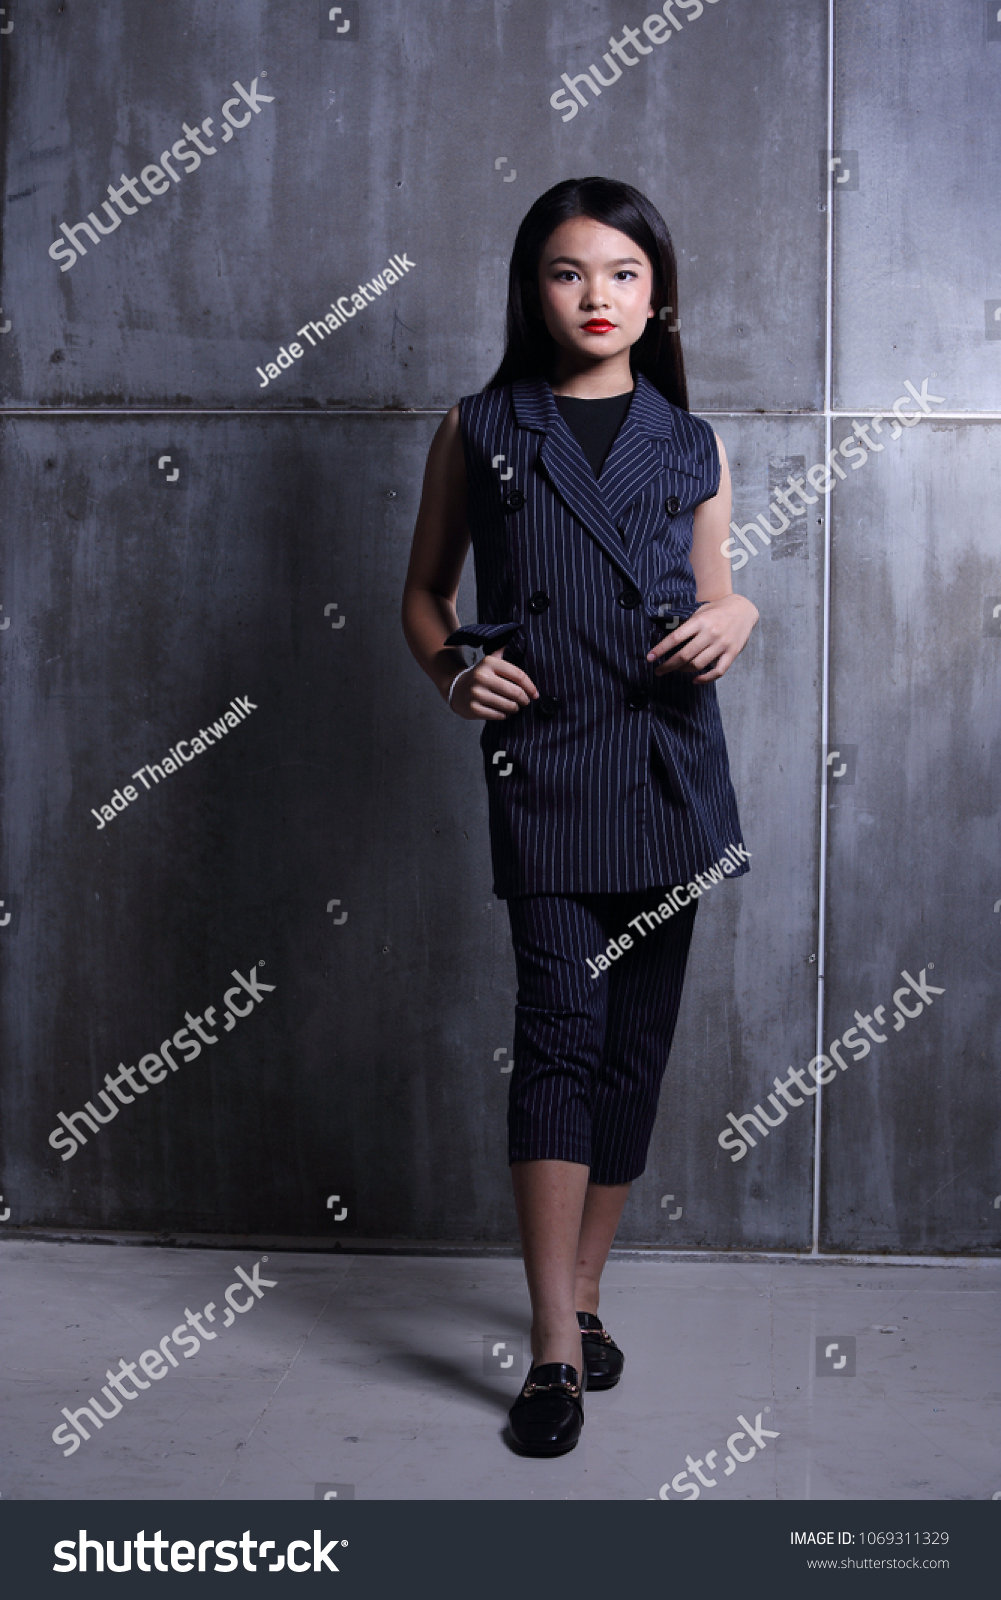 Business Kid Girl in formal suit stand on dark abstract background, studio lighting copy space for text logo, black hair eleven years old full length snap body #1069311329